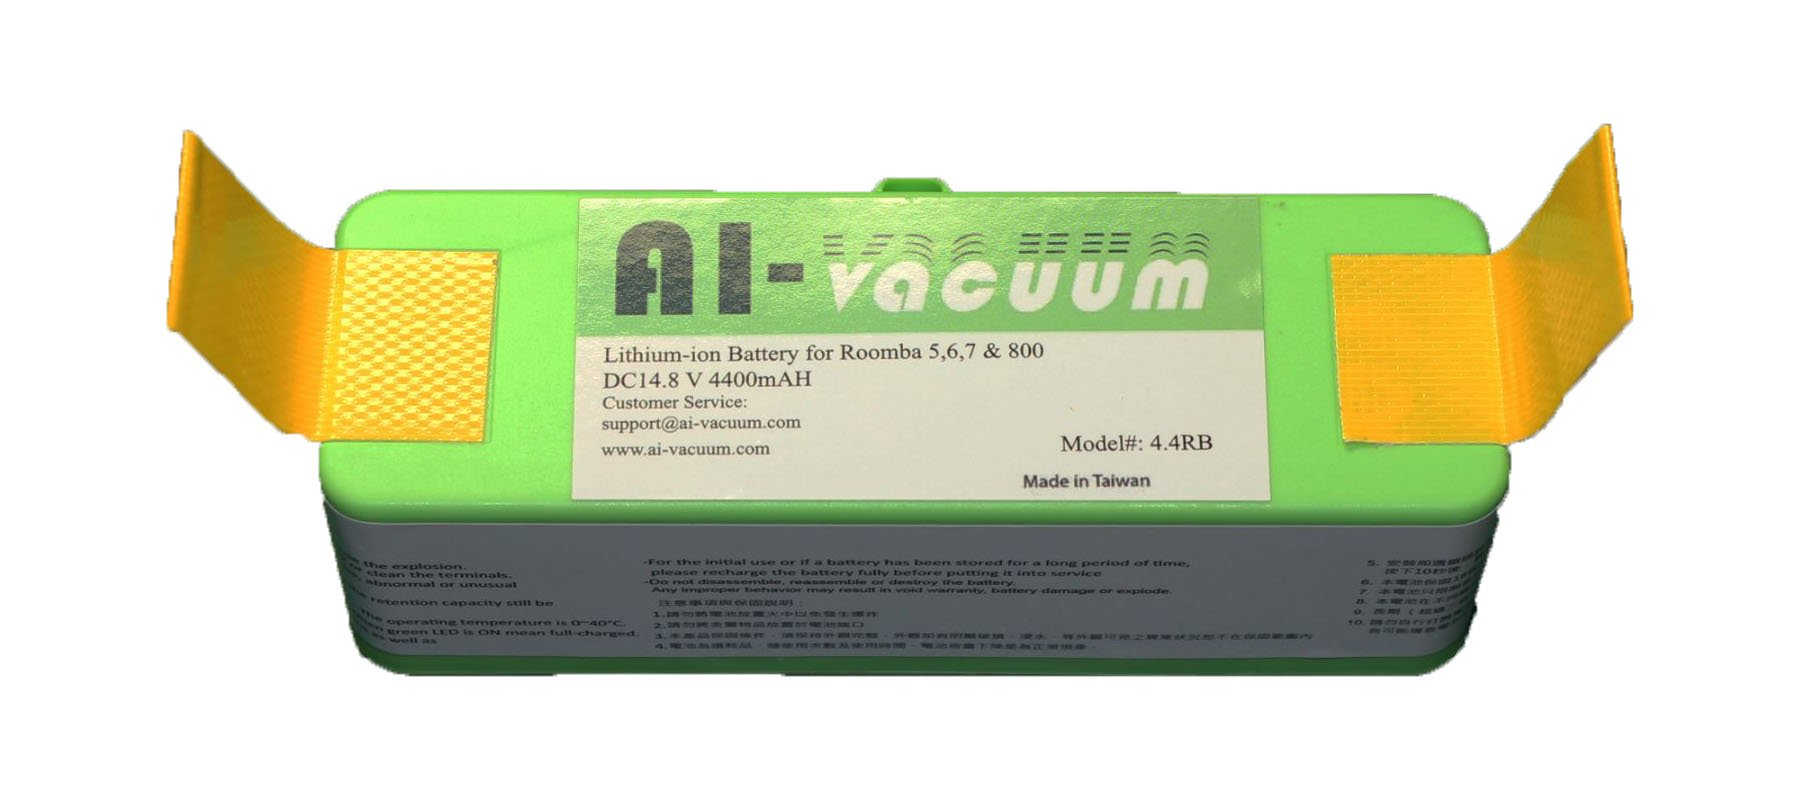 AI-Vacuum Lithium-ion 4400 mAH Battery for Roomba 500, 600,700, 800 Series